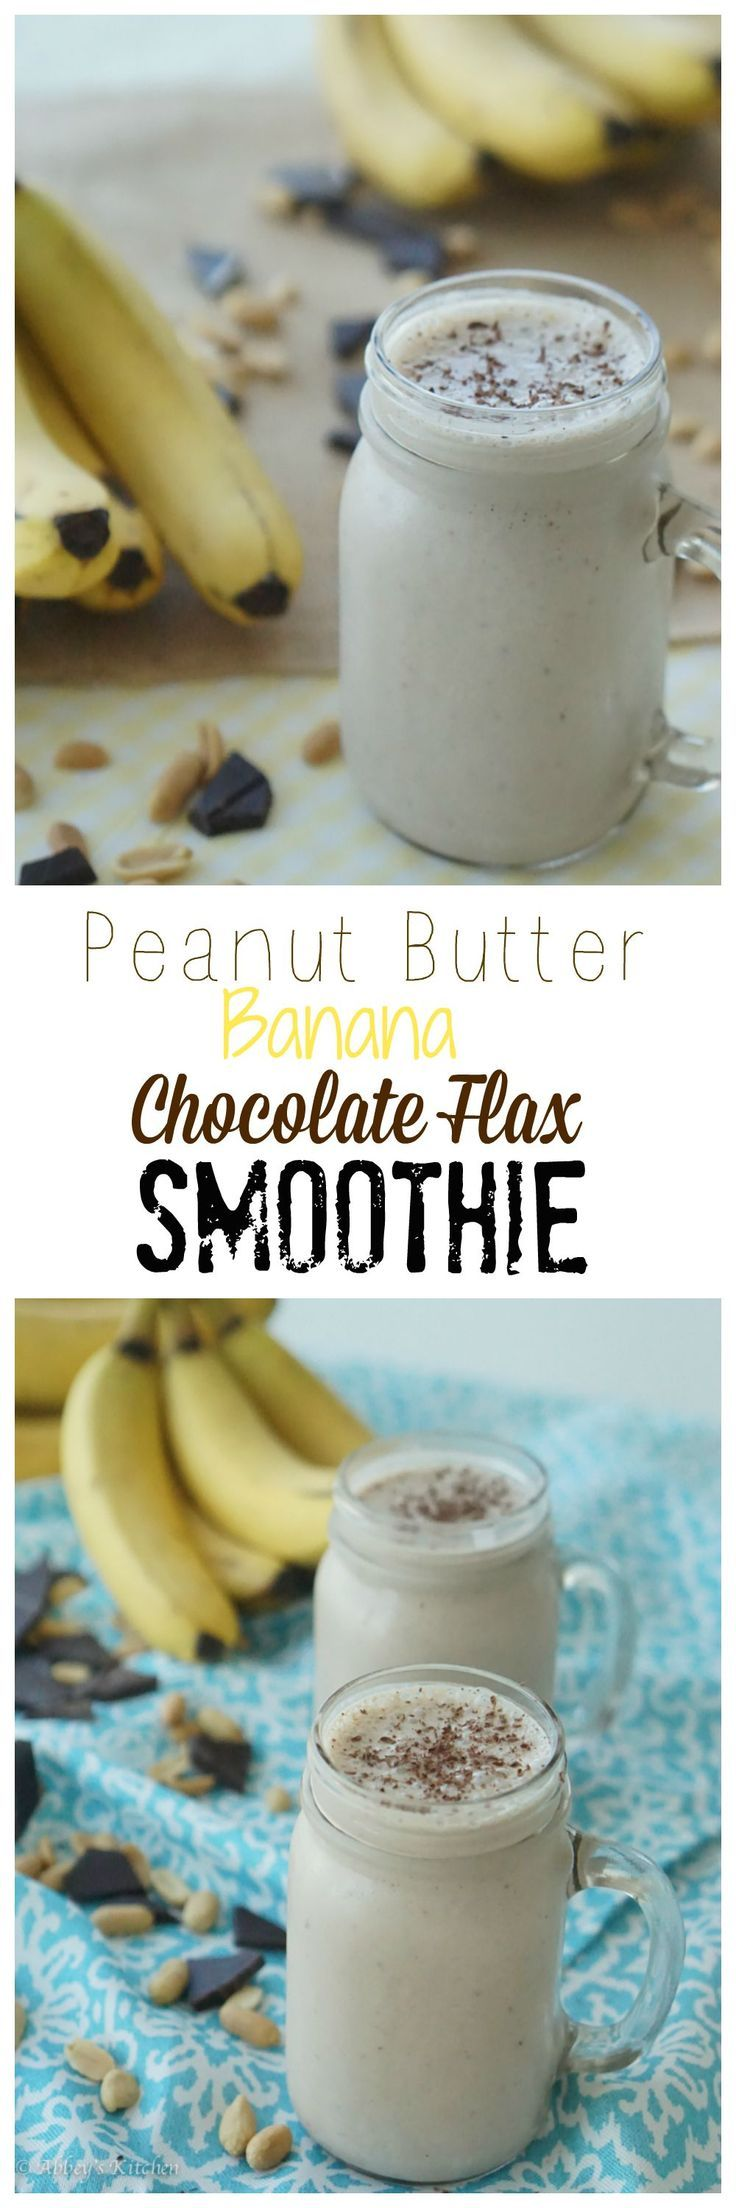 Make my No-Sugar Added Peanut Butter, Banana and Chocolate Flax Smoothie today! #ad #smoothie